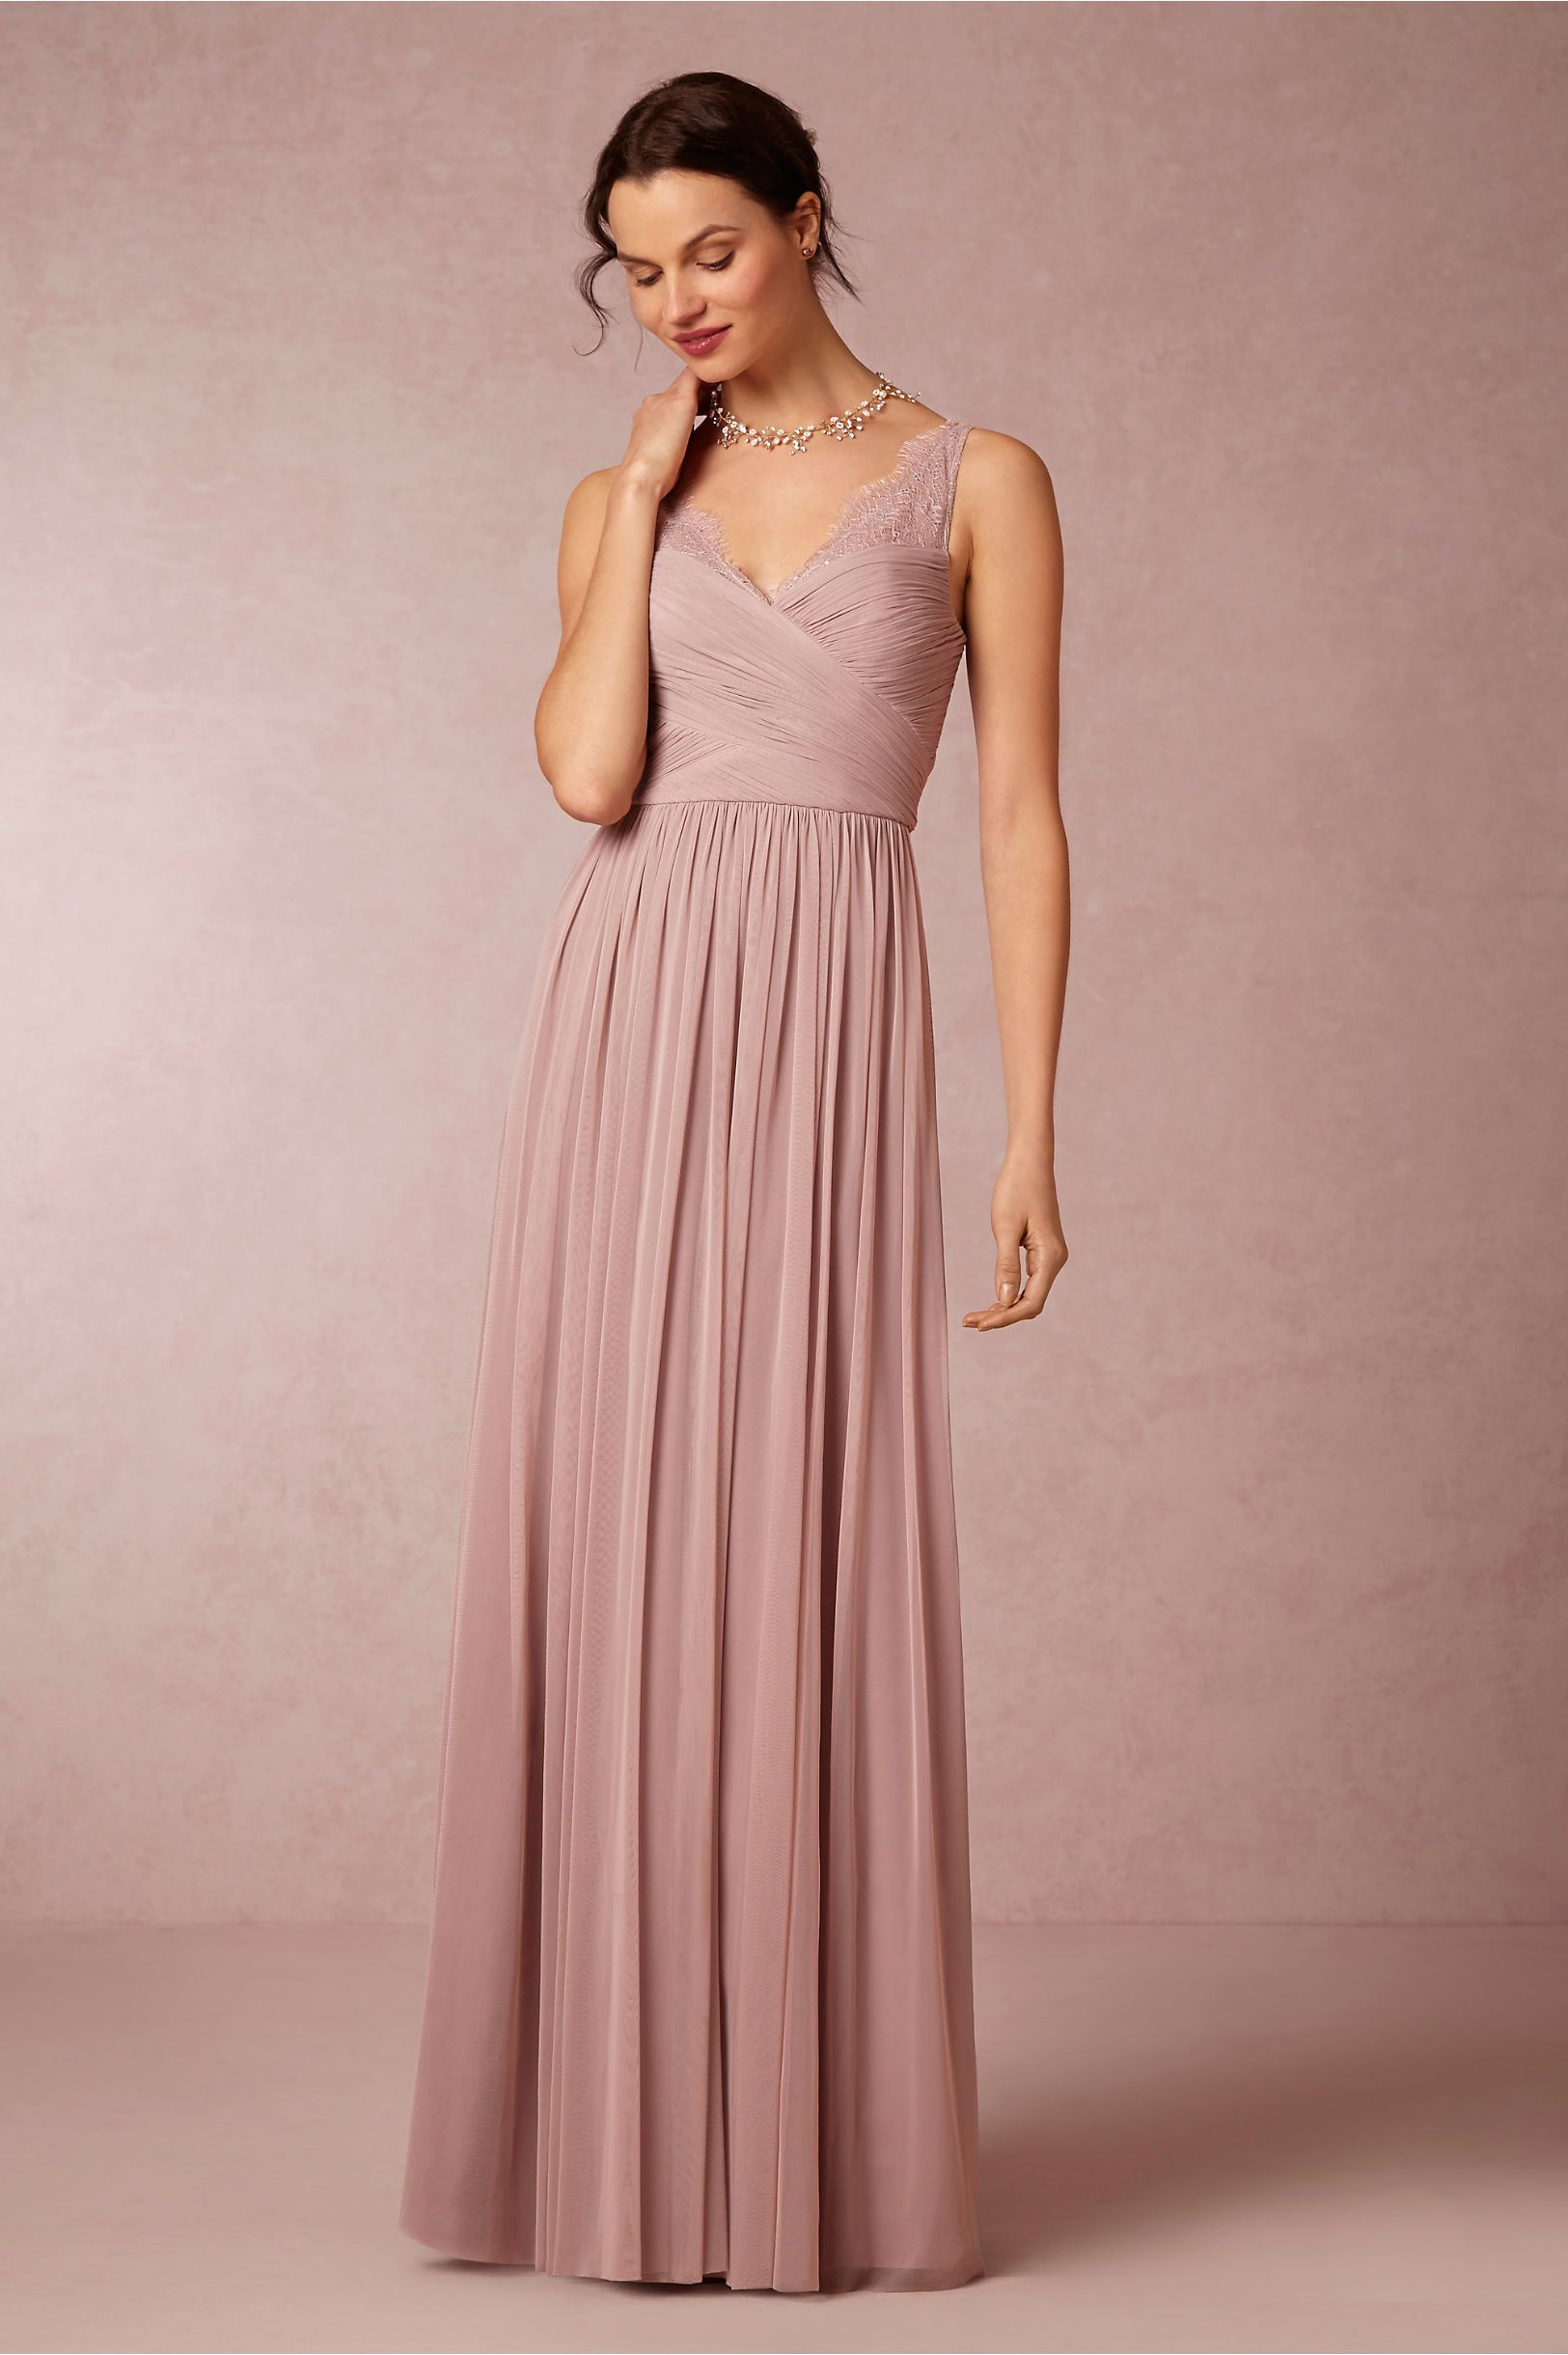 Shop the Look! Wedding Ideas with BHLDN | Damas, Vestiditos y ...